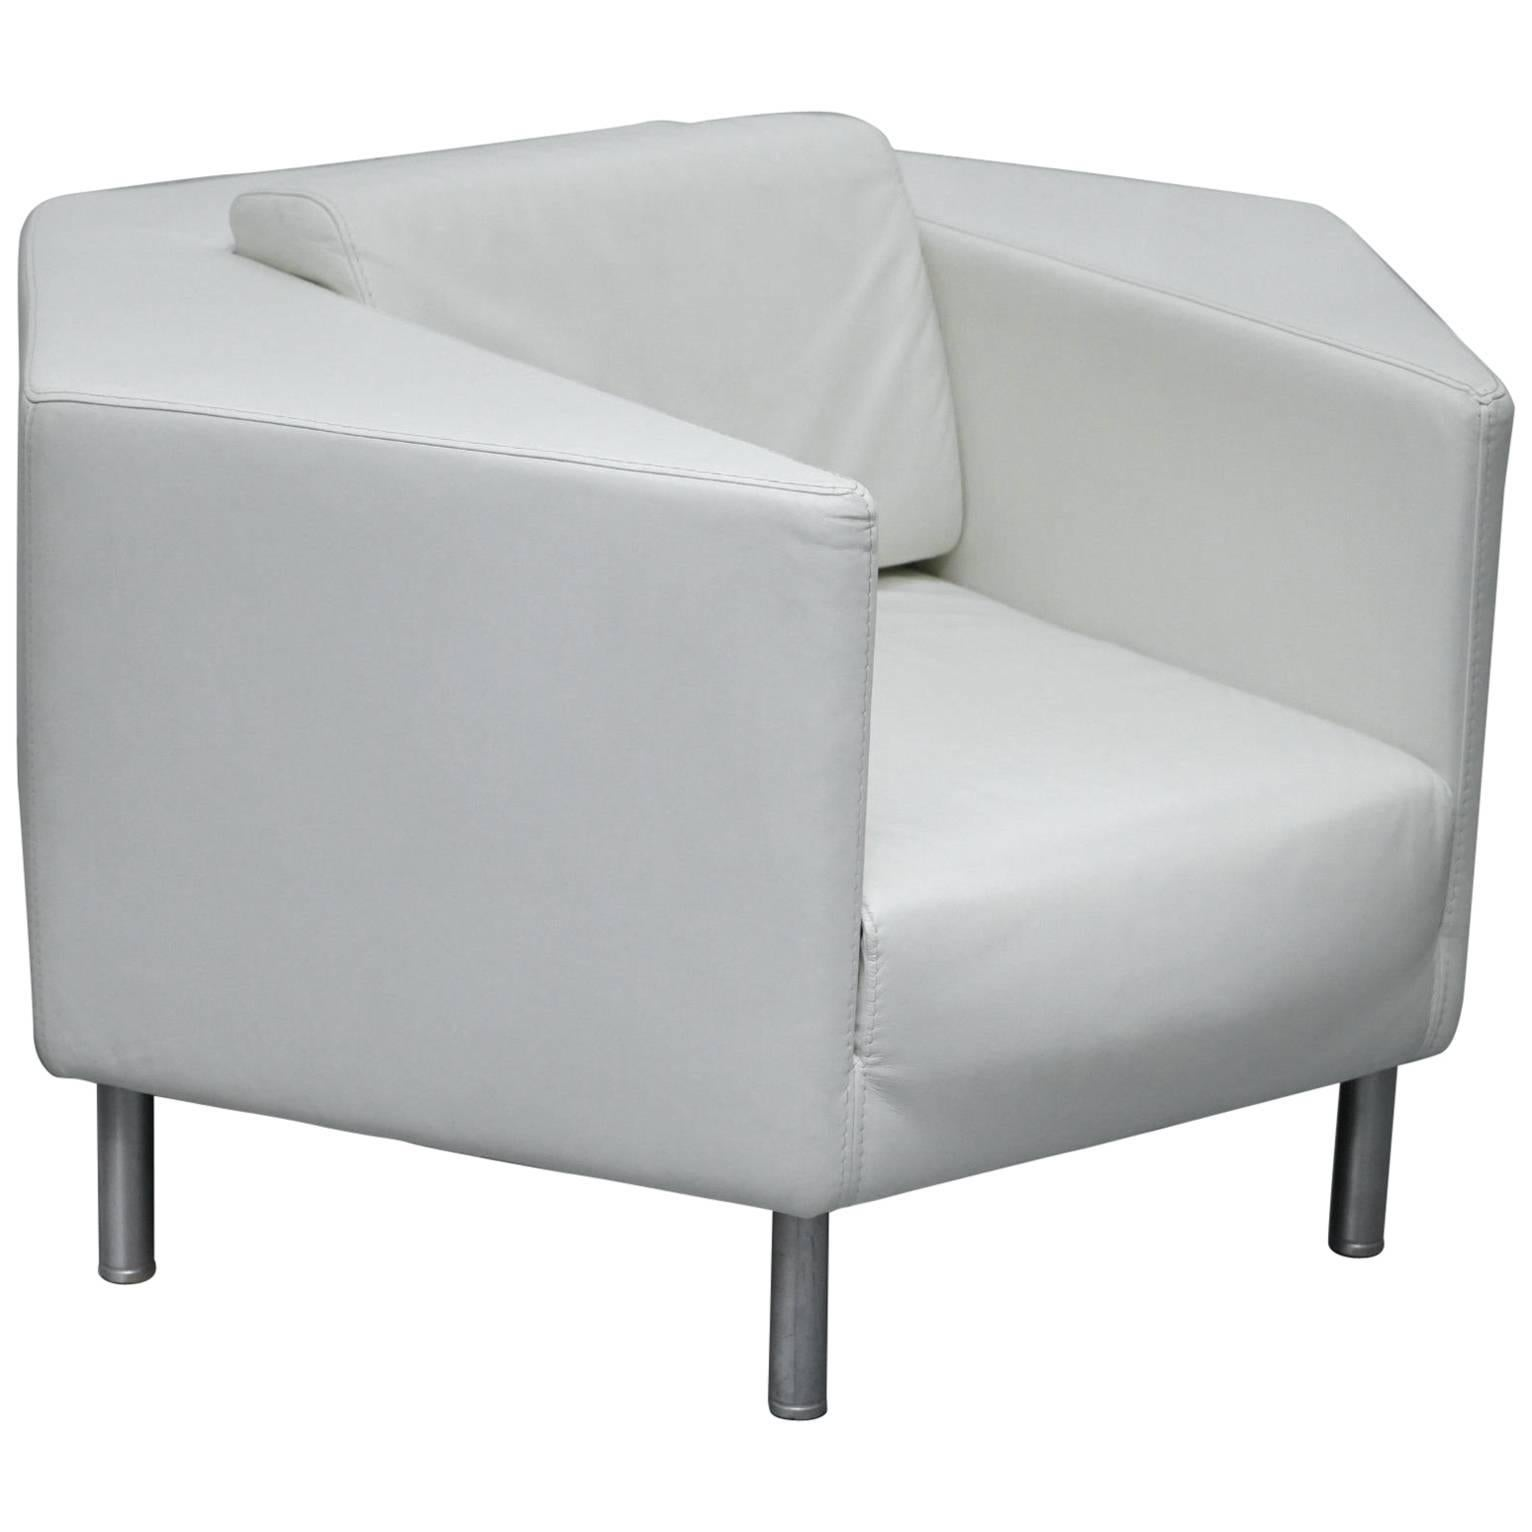 Black Lacquer Arm Chair In White Leather For Sale At 1stdibs